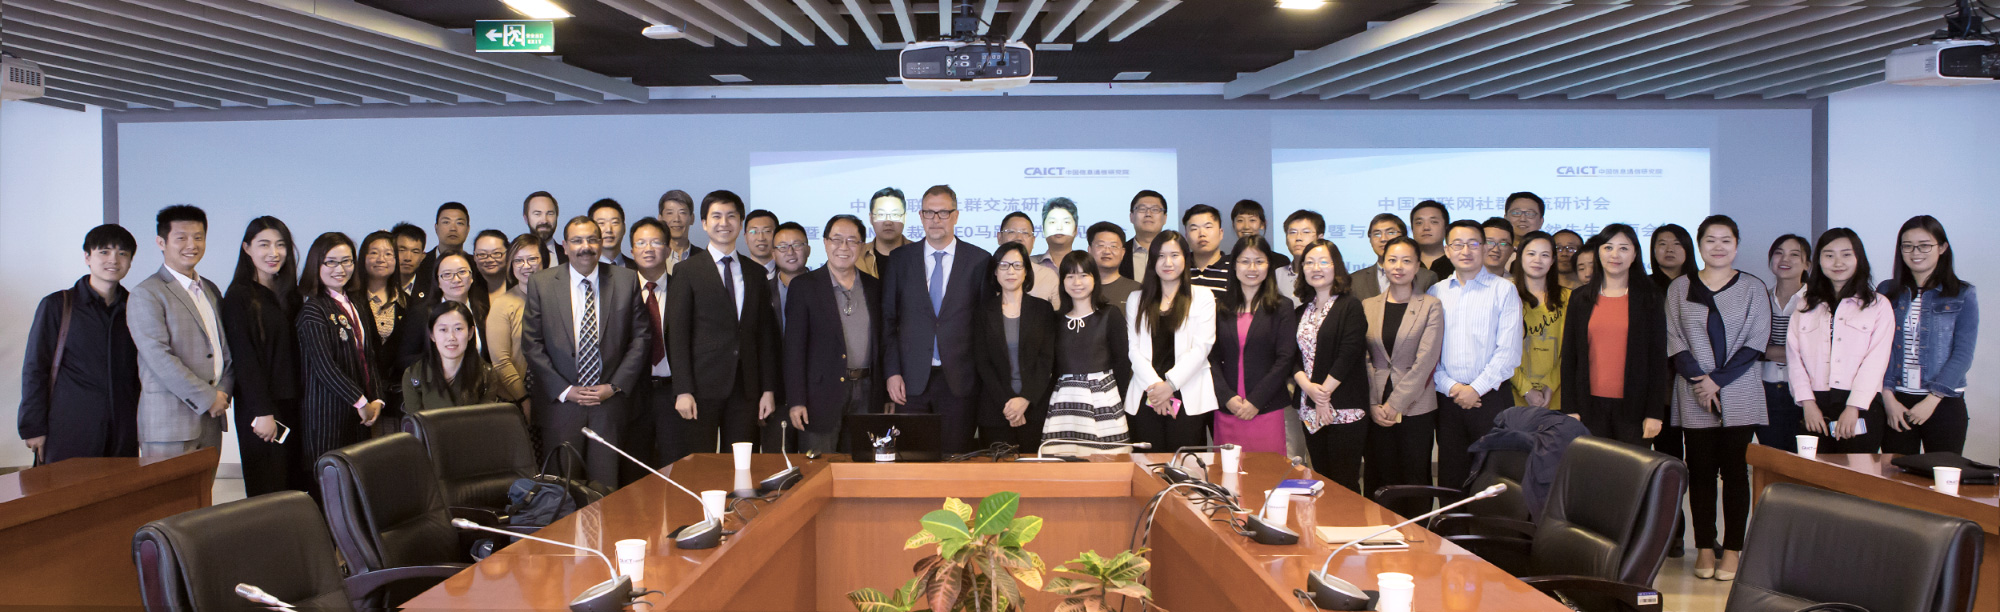 Göran Marby's First Visit to China as ICANN President, Named 马跃然 by China Internet Community